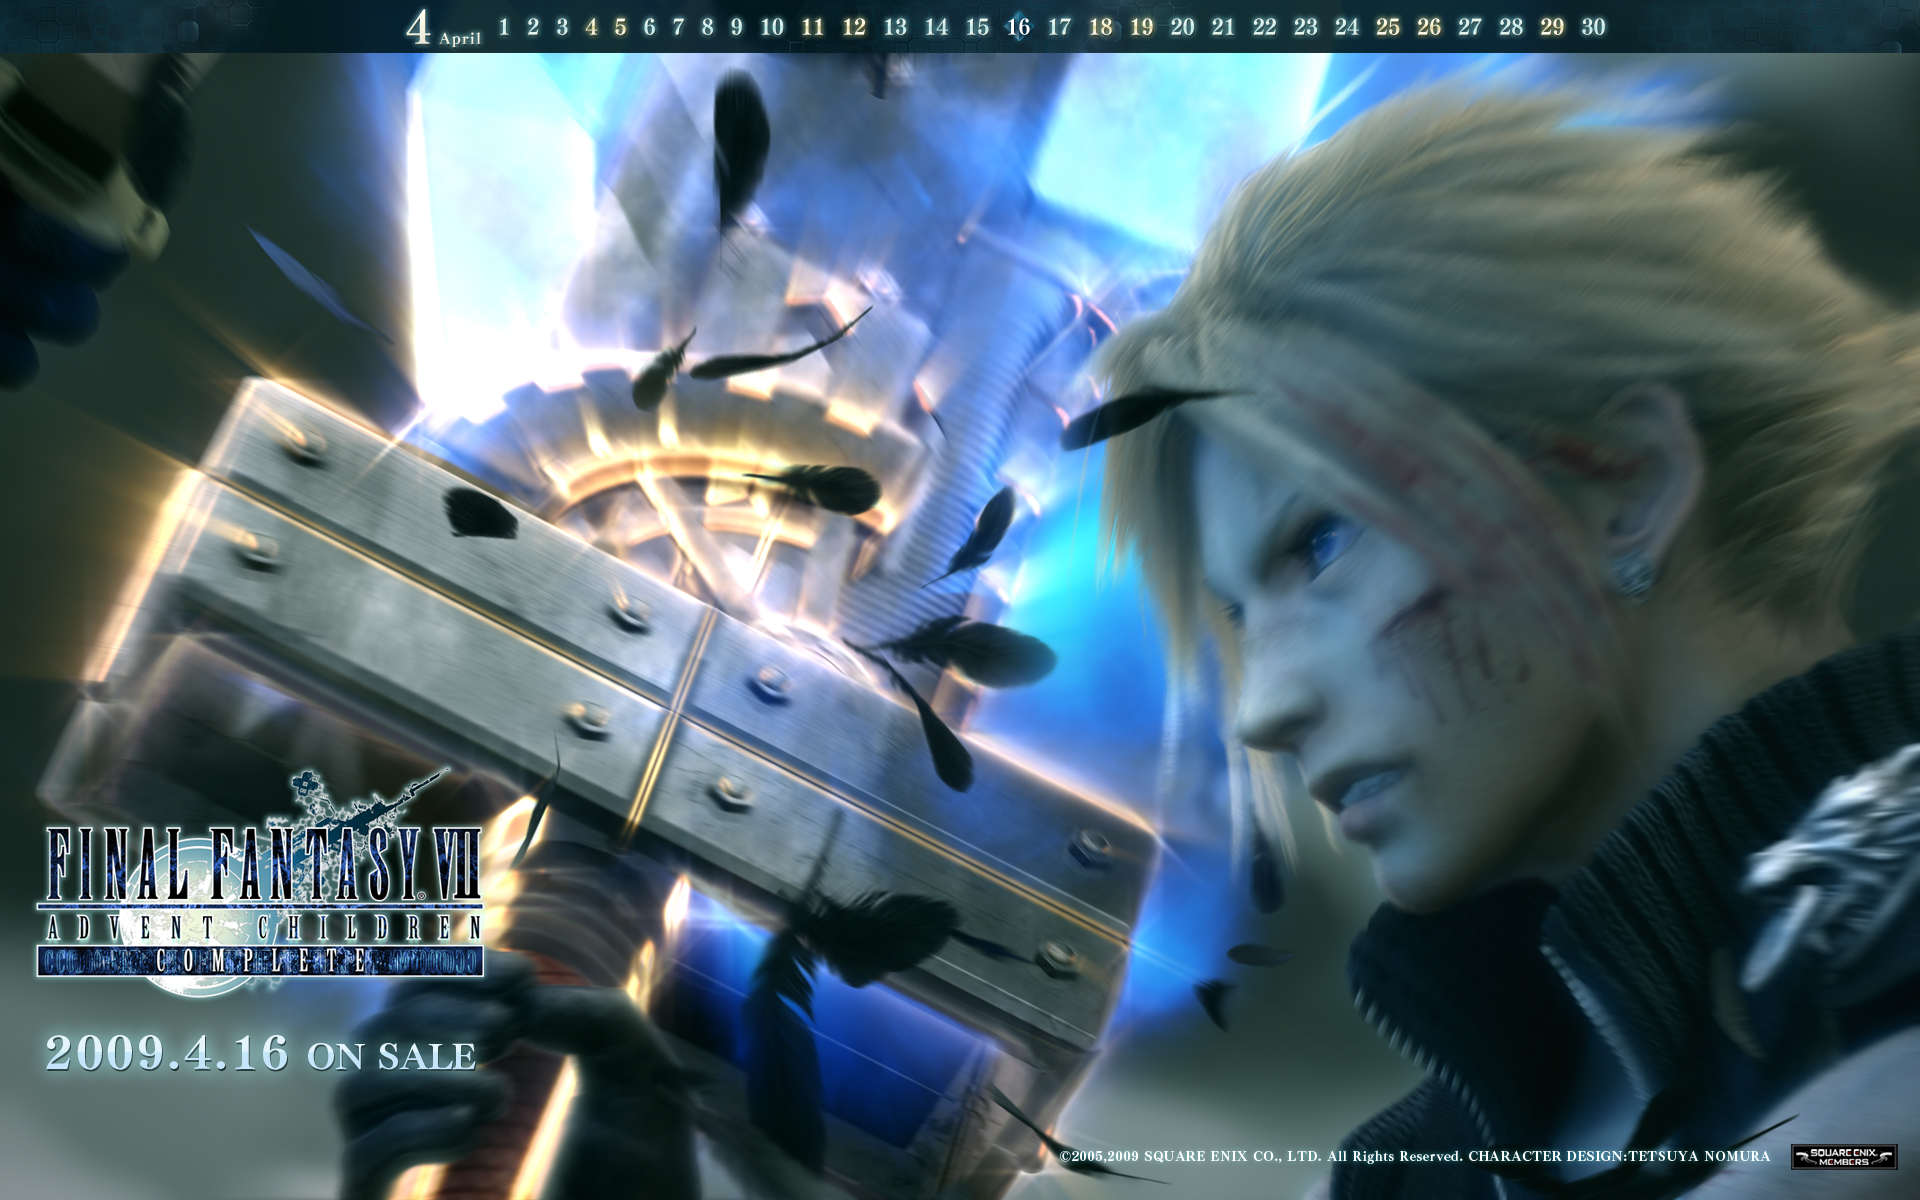 Two new Final Fantasy VII: Advent Children Wallpapers from SQEX Members